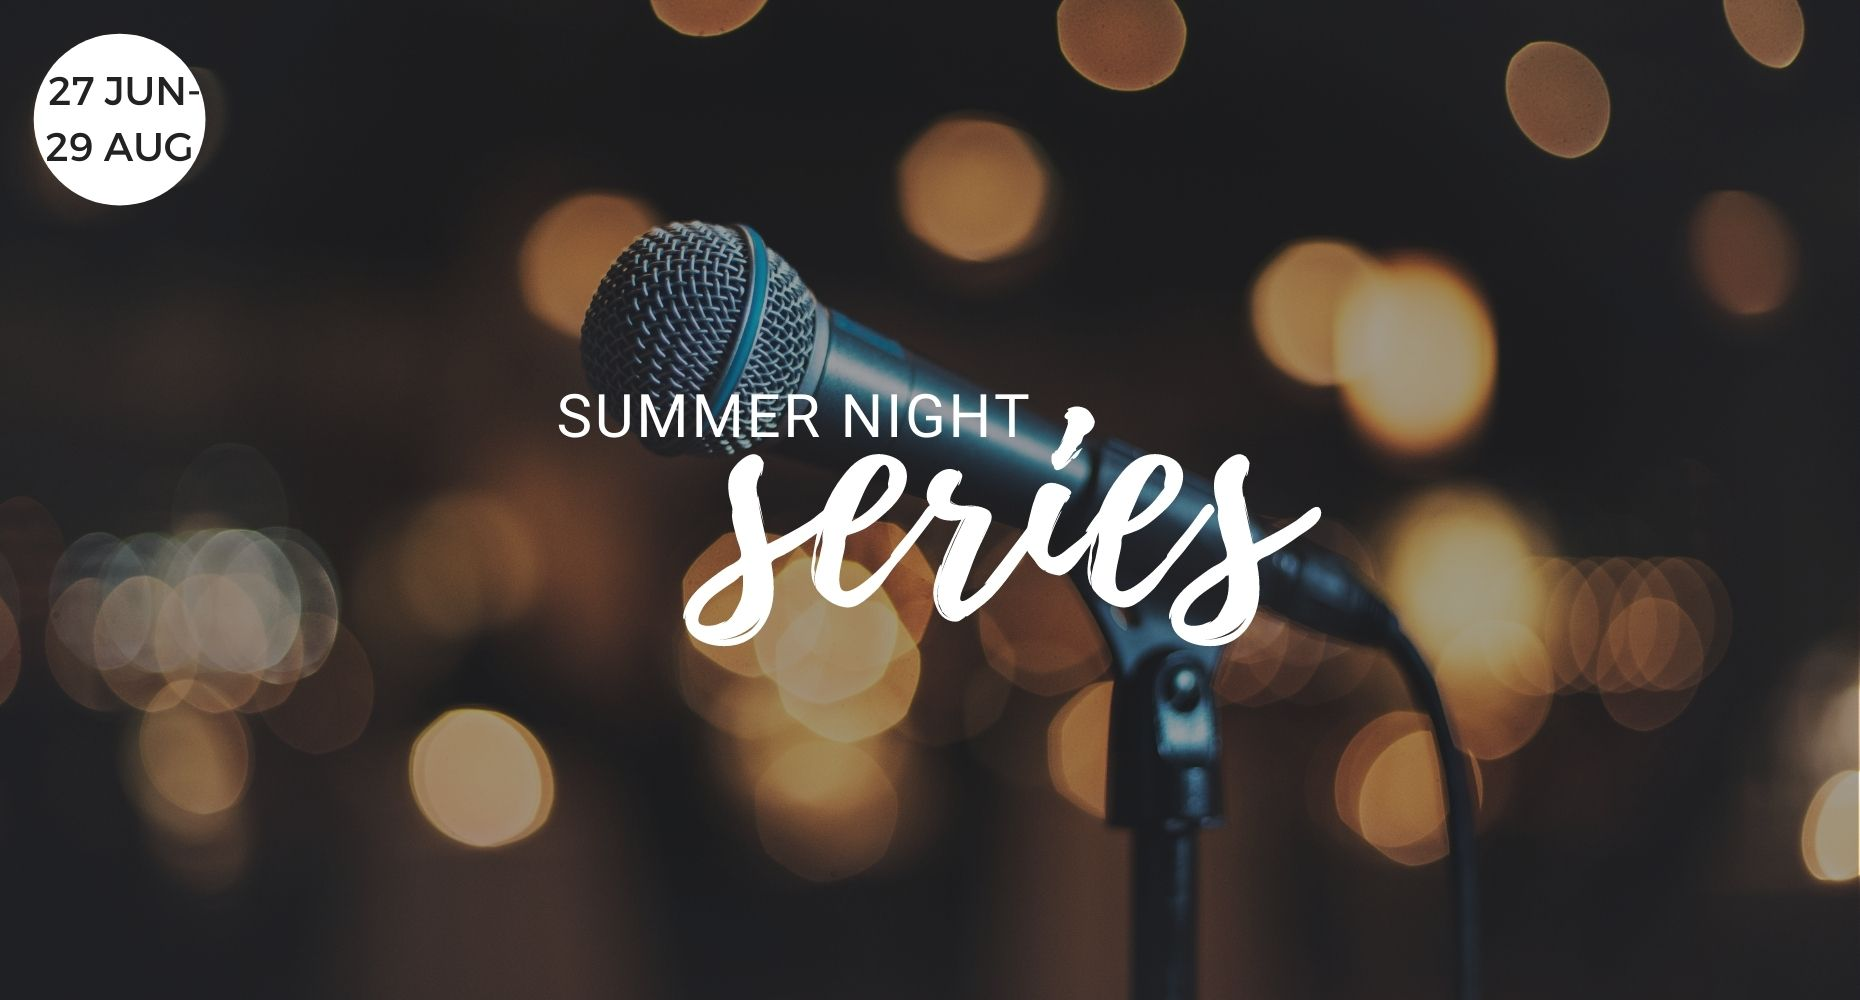 Summer Night Series , Happy Hour, Under the tent, Whidbey Island, Events, Washington, Things to do, music, Summer